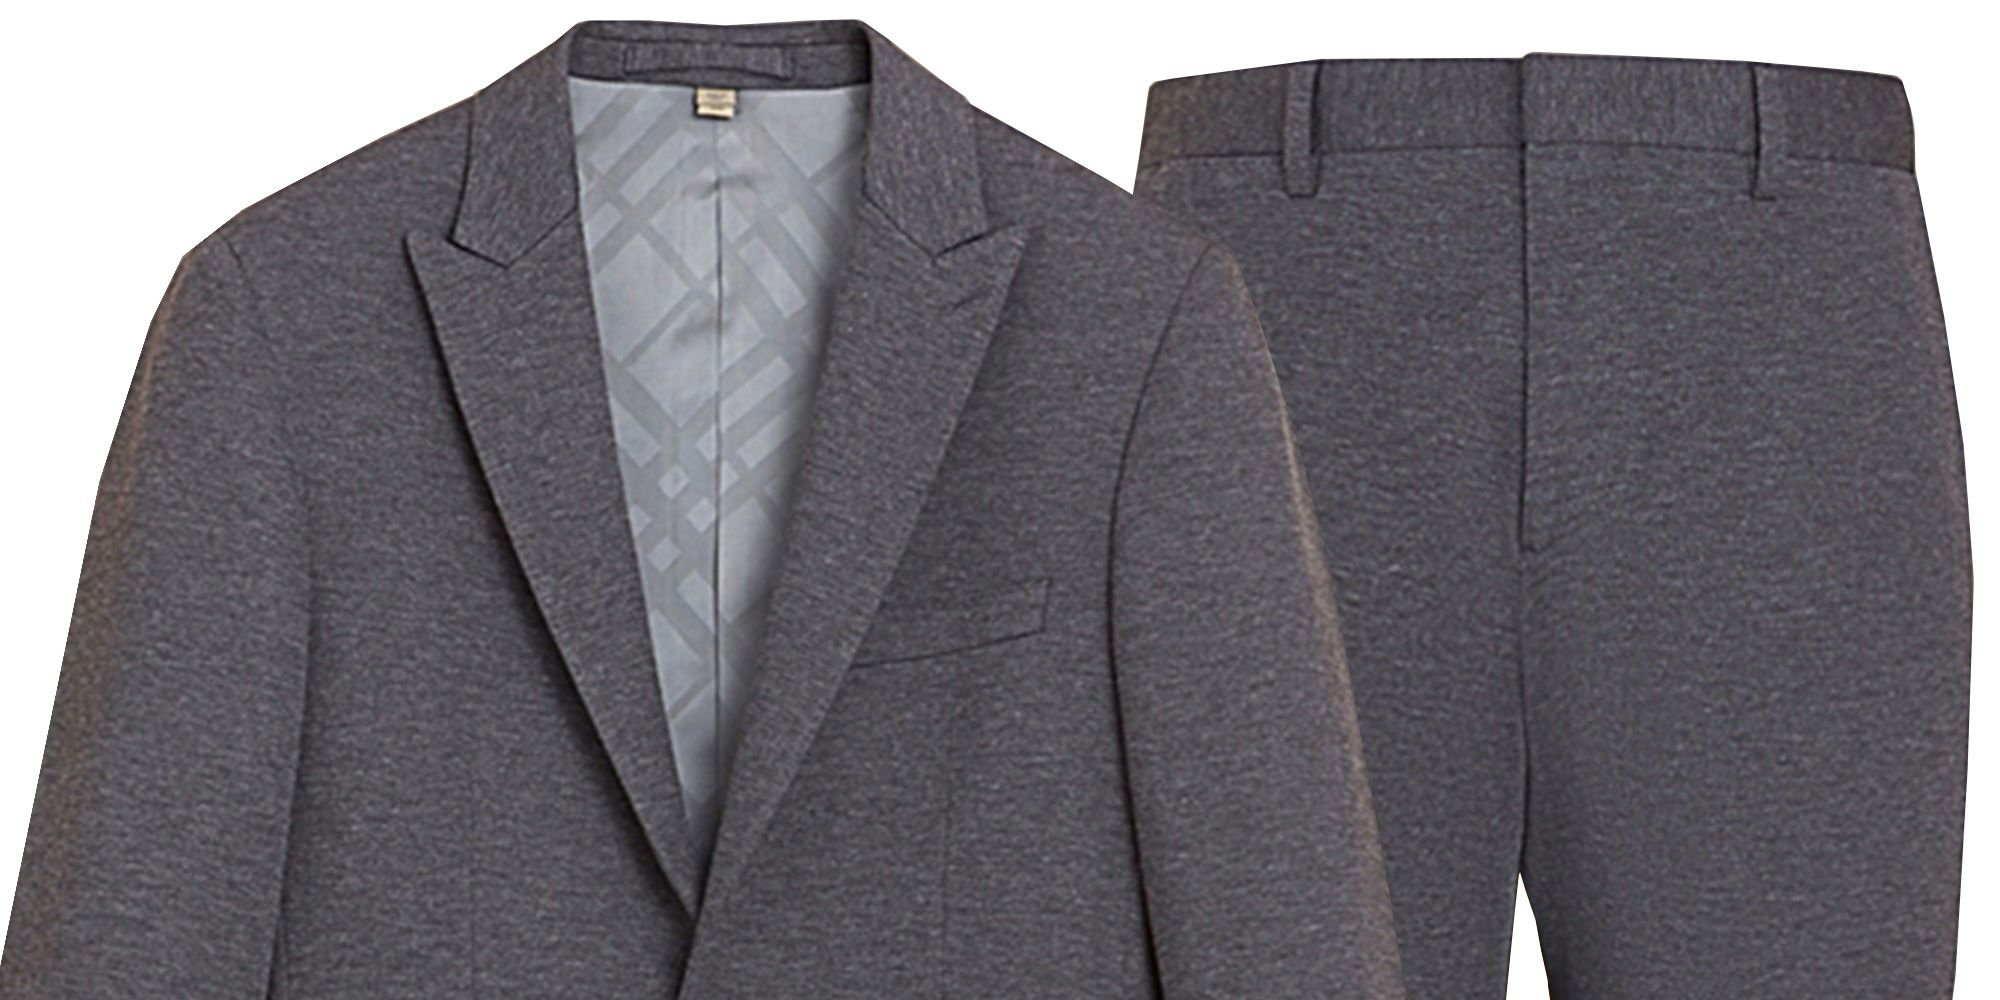 3cf6e1fe1 No Sweat: 10 Suits to Wear to a Summer Wedding